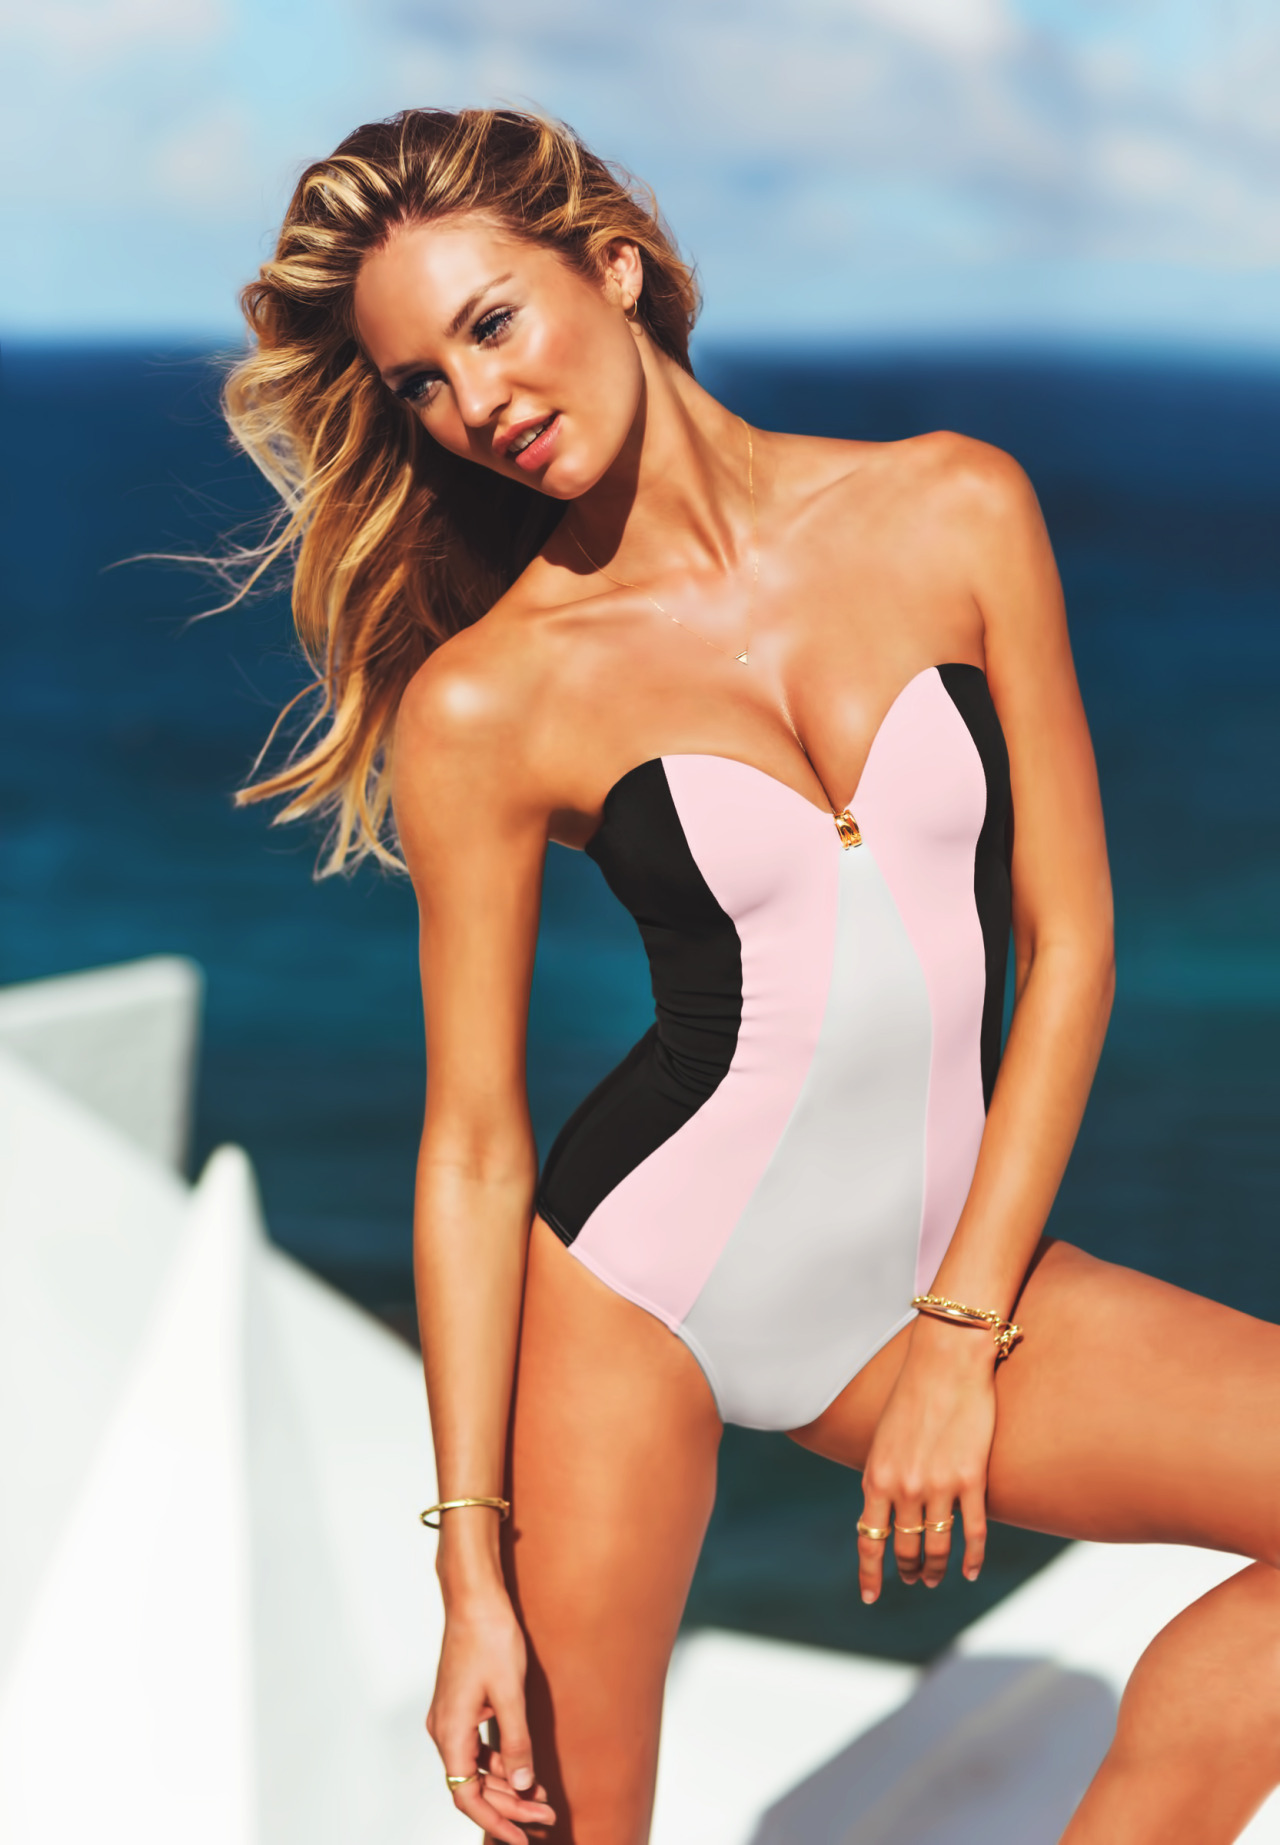 deluusion:  i was just online looking at this bathing suit and i want it but it's like $100 *cries*